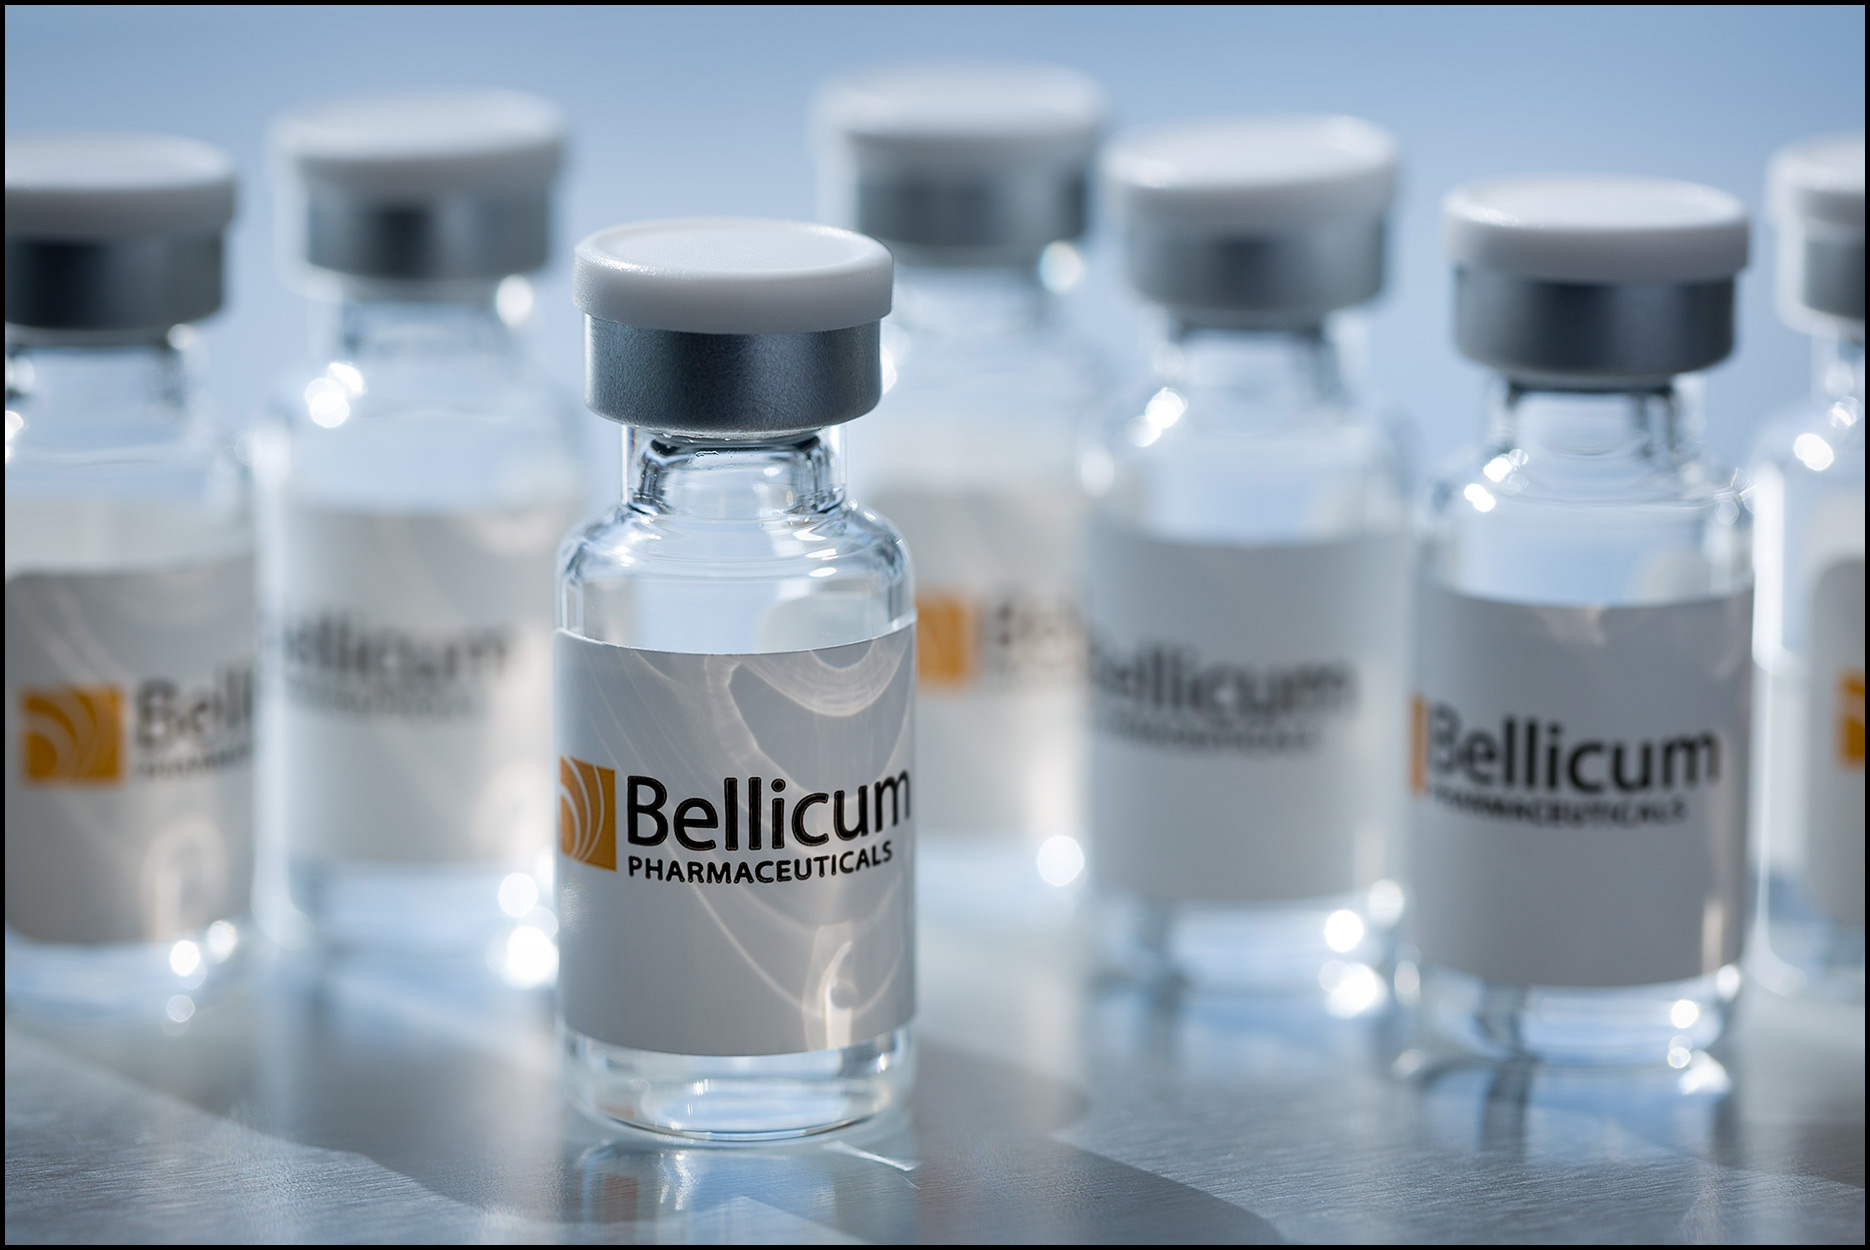 Detail of collection of small cancer drug sample vials on stainless steel surface.